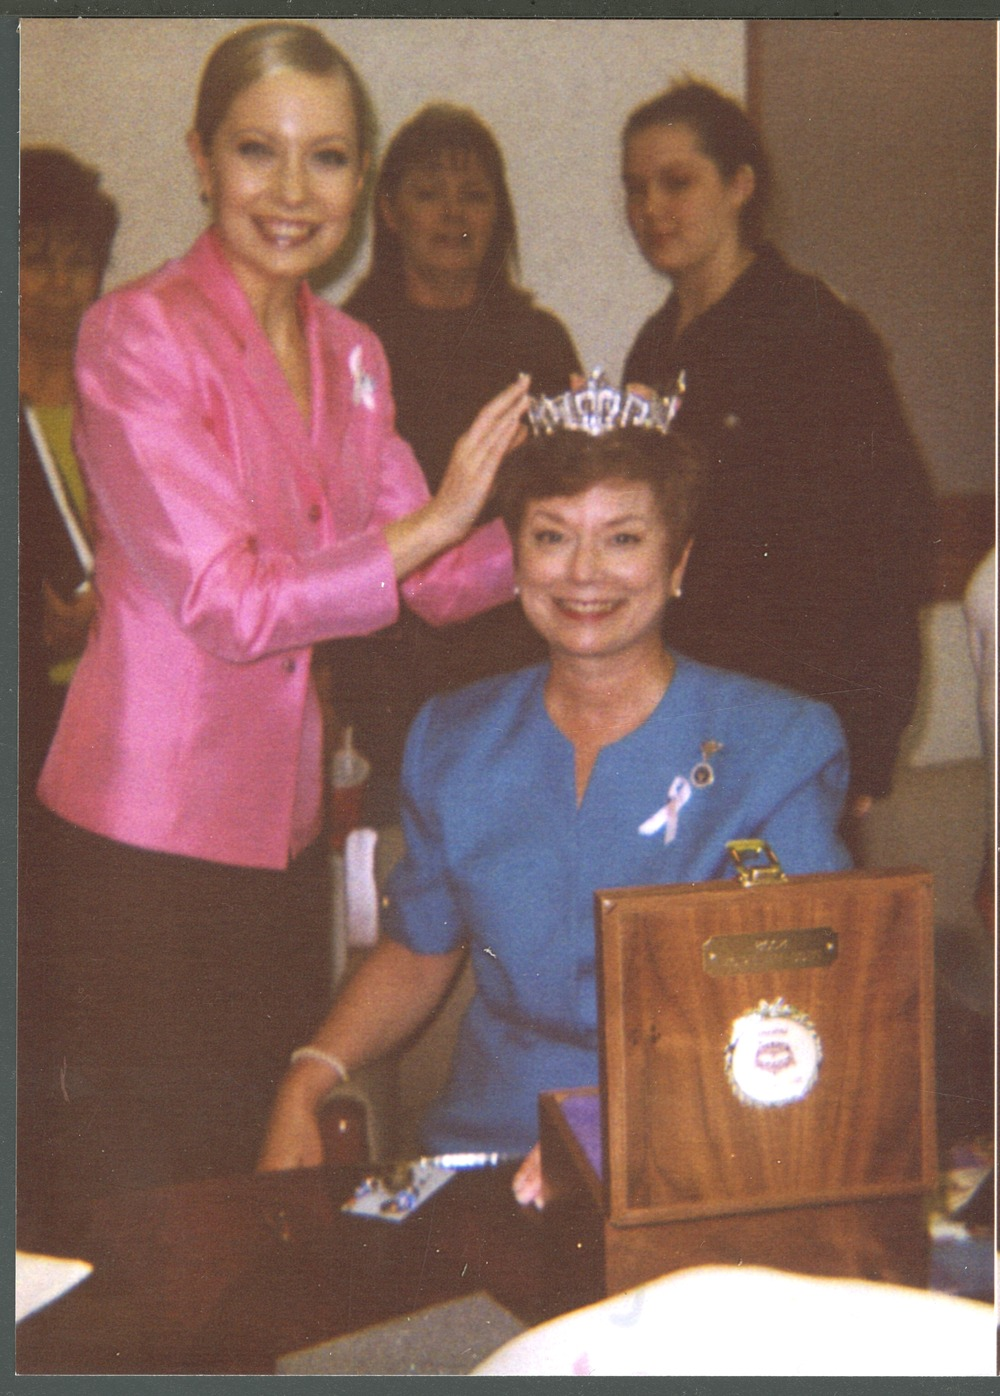 Cindy Rogers trying on Katie Harman's Miss America crown